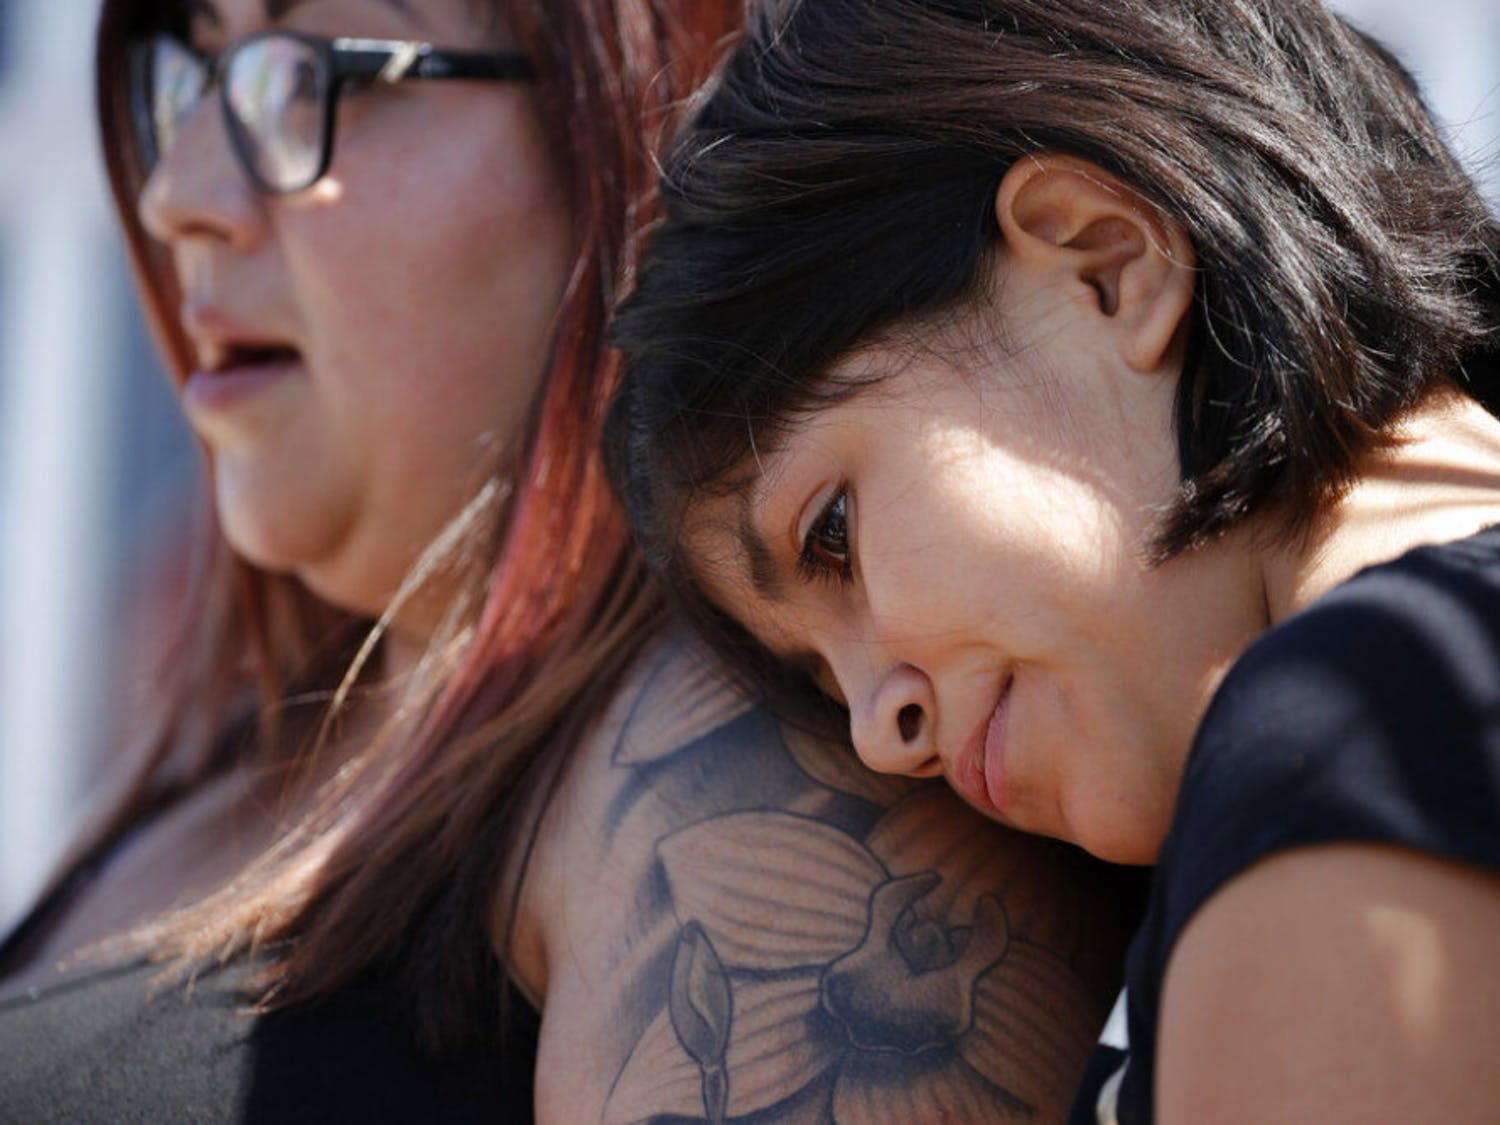 Eleven-year-old Leilani Hebben puts her head on her mother Anabel Hebben's shoulder as they visit the scene of a mass shooting at a shopping complex Sunday, Aug. 4, 2019, in El Paso, Texas.